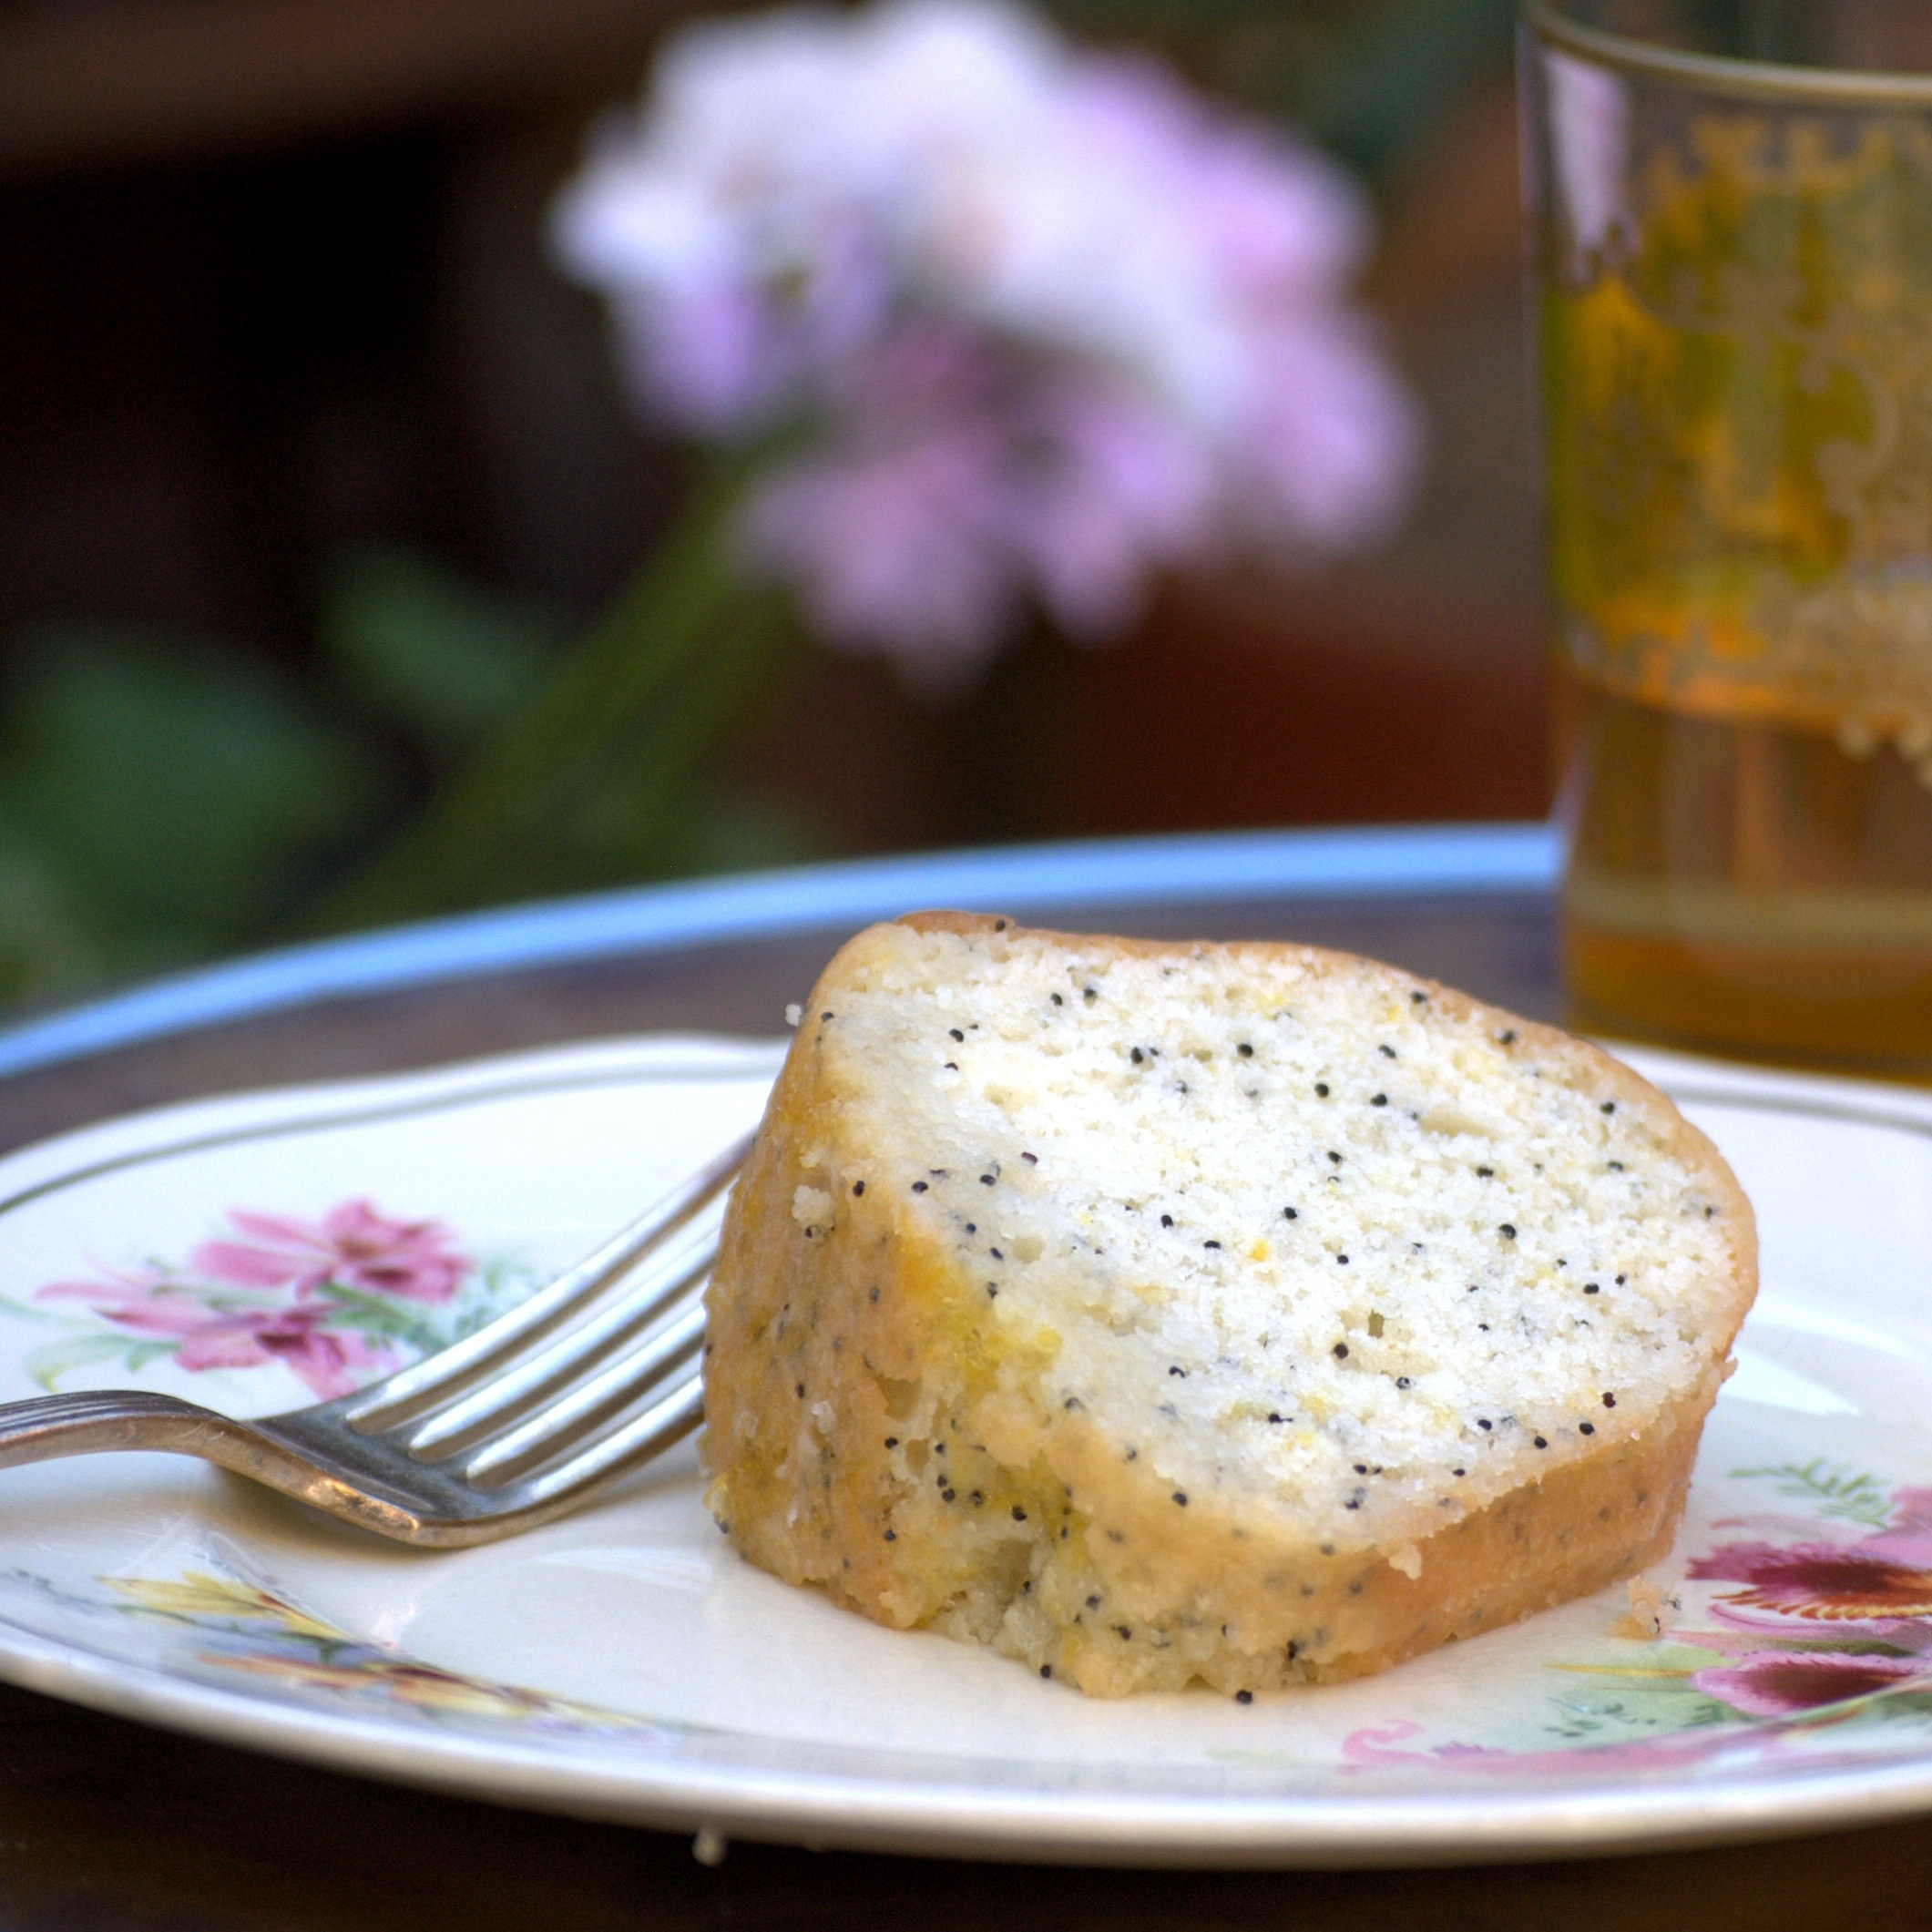 Lemon and poppy seed syrup cake (torta al limone e semi di papavero)